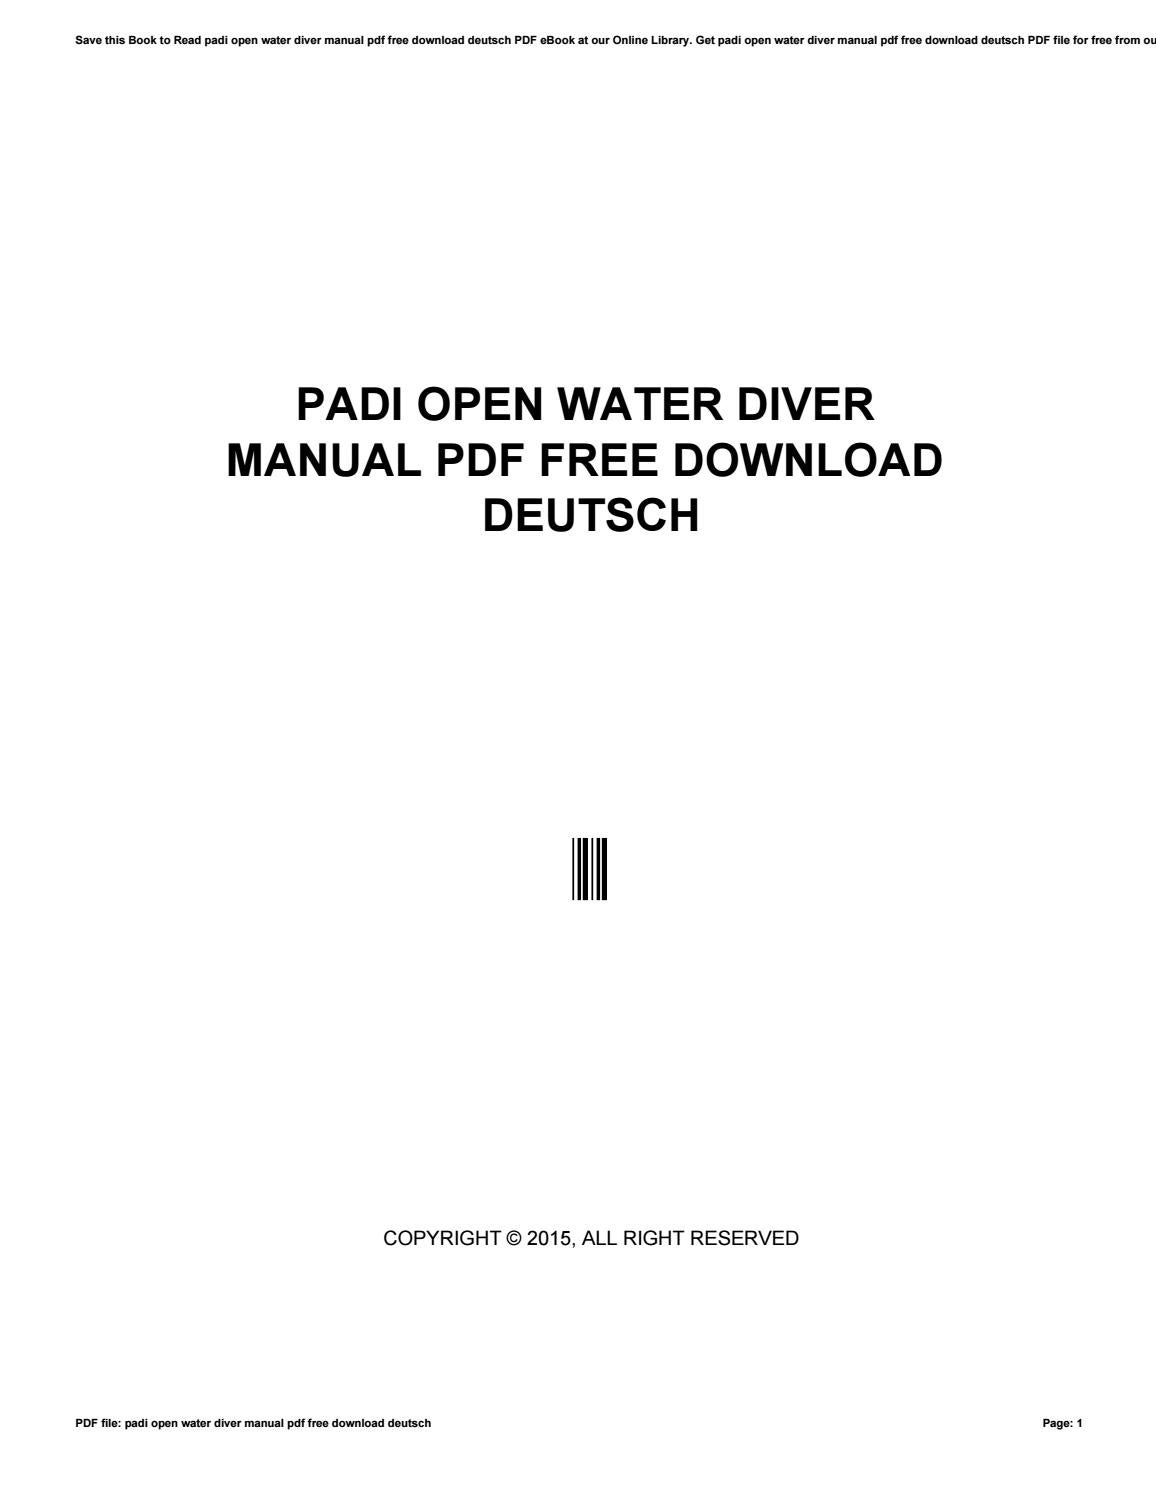 Padi open water diver manual pdf free download deutsch by kusrc68 padi open water diver manual pdf free download deutsch by kusrc68 issuu fandeluxe Choice Image